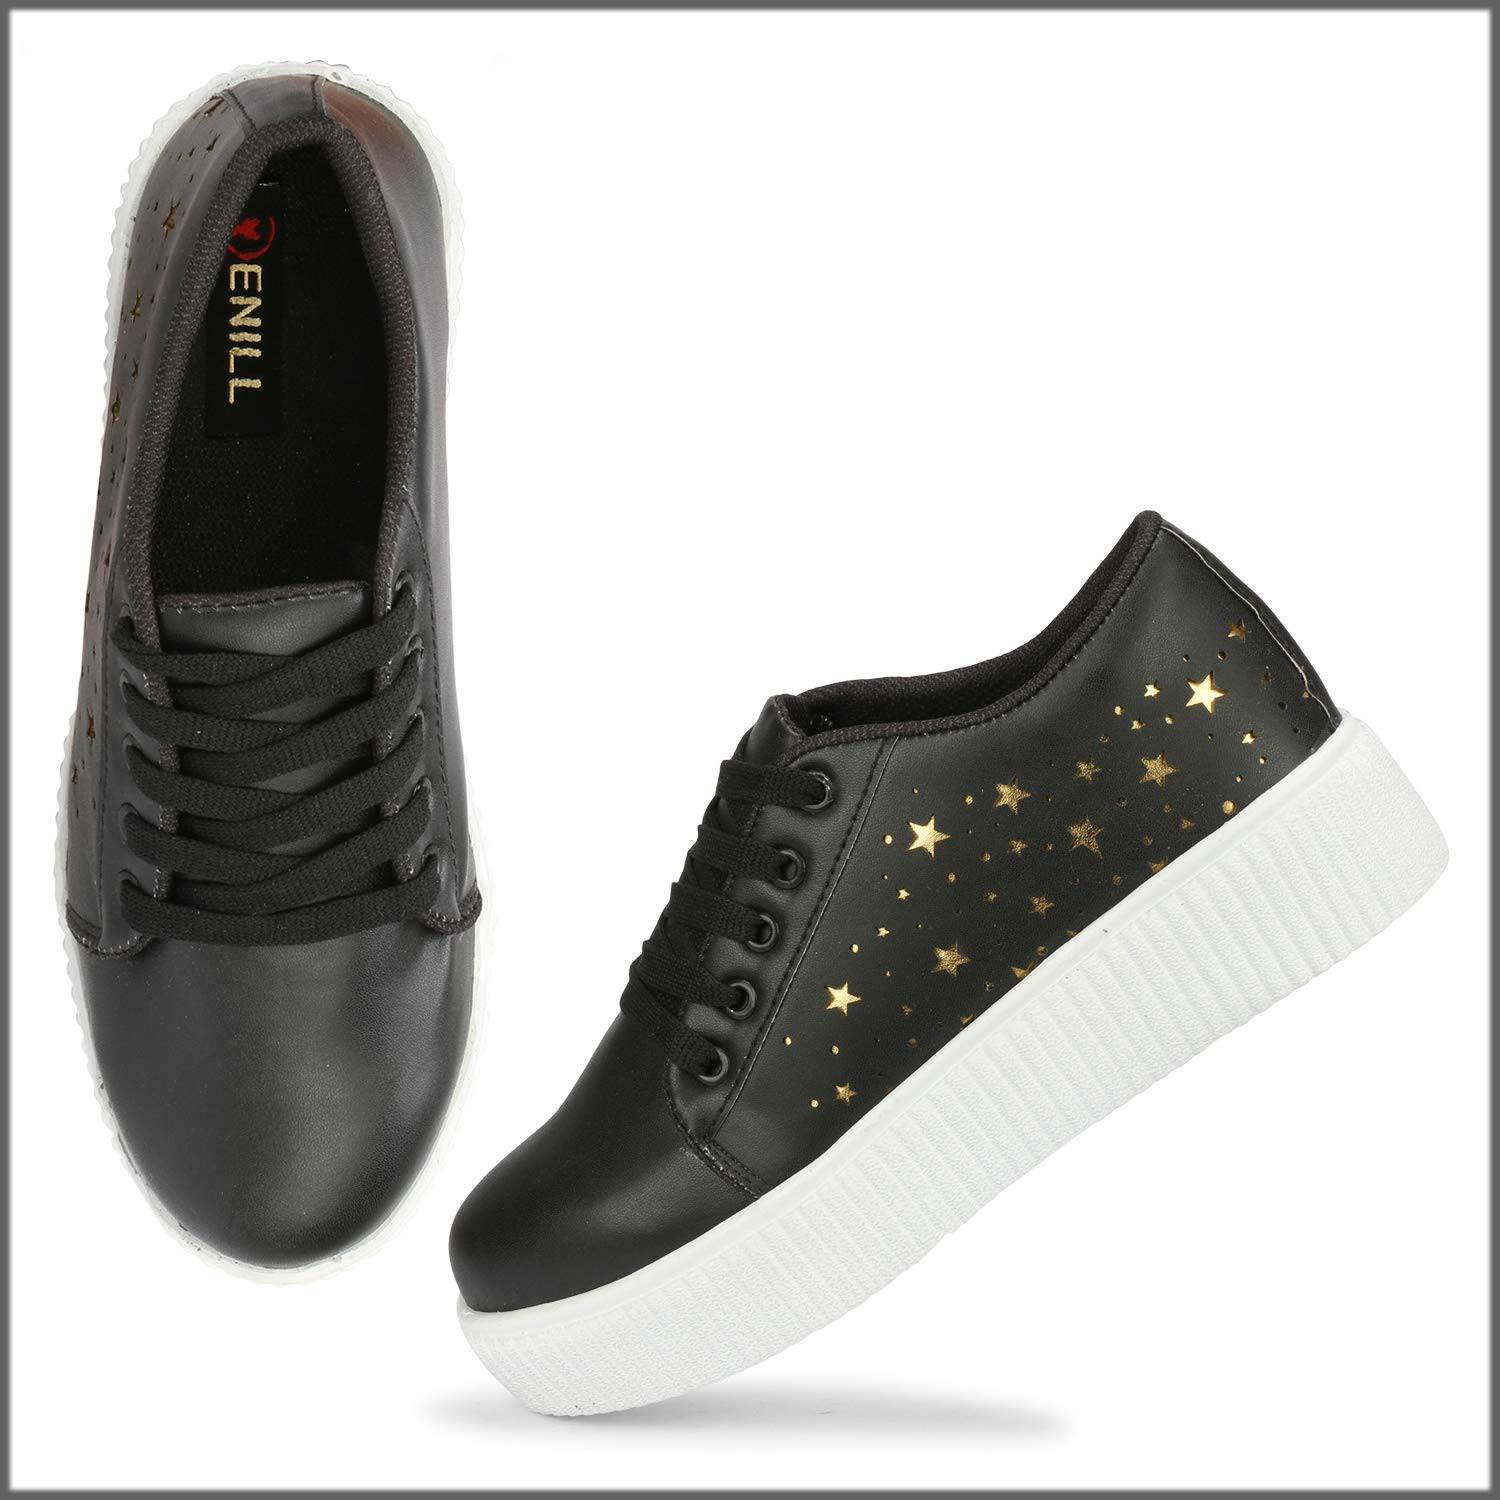 lovely sneakers for ladies